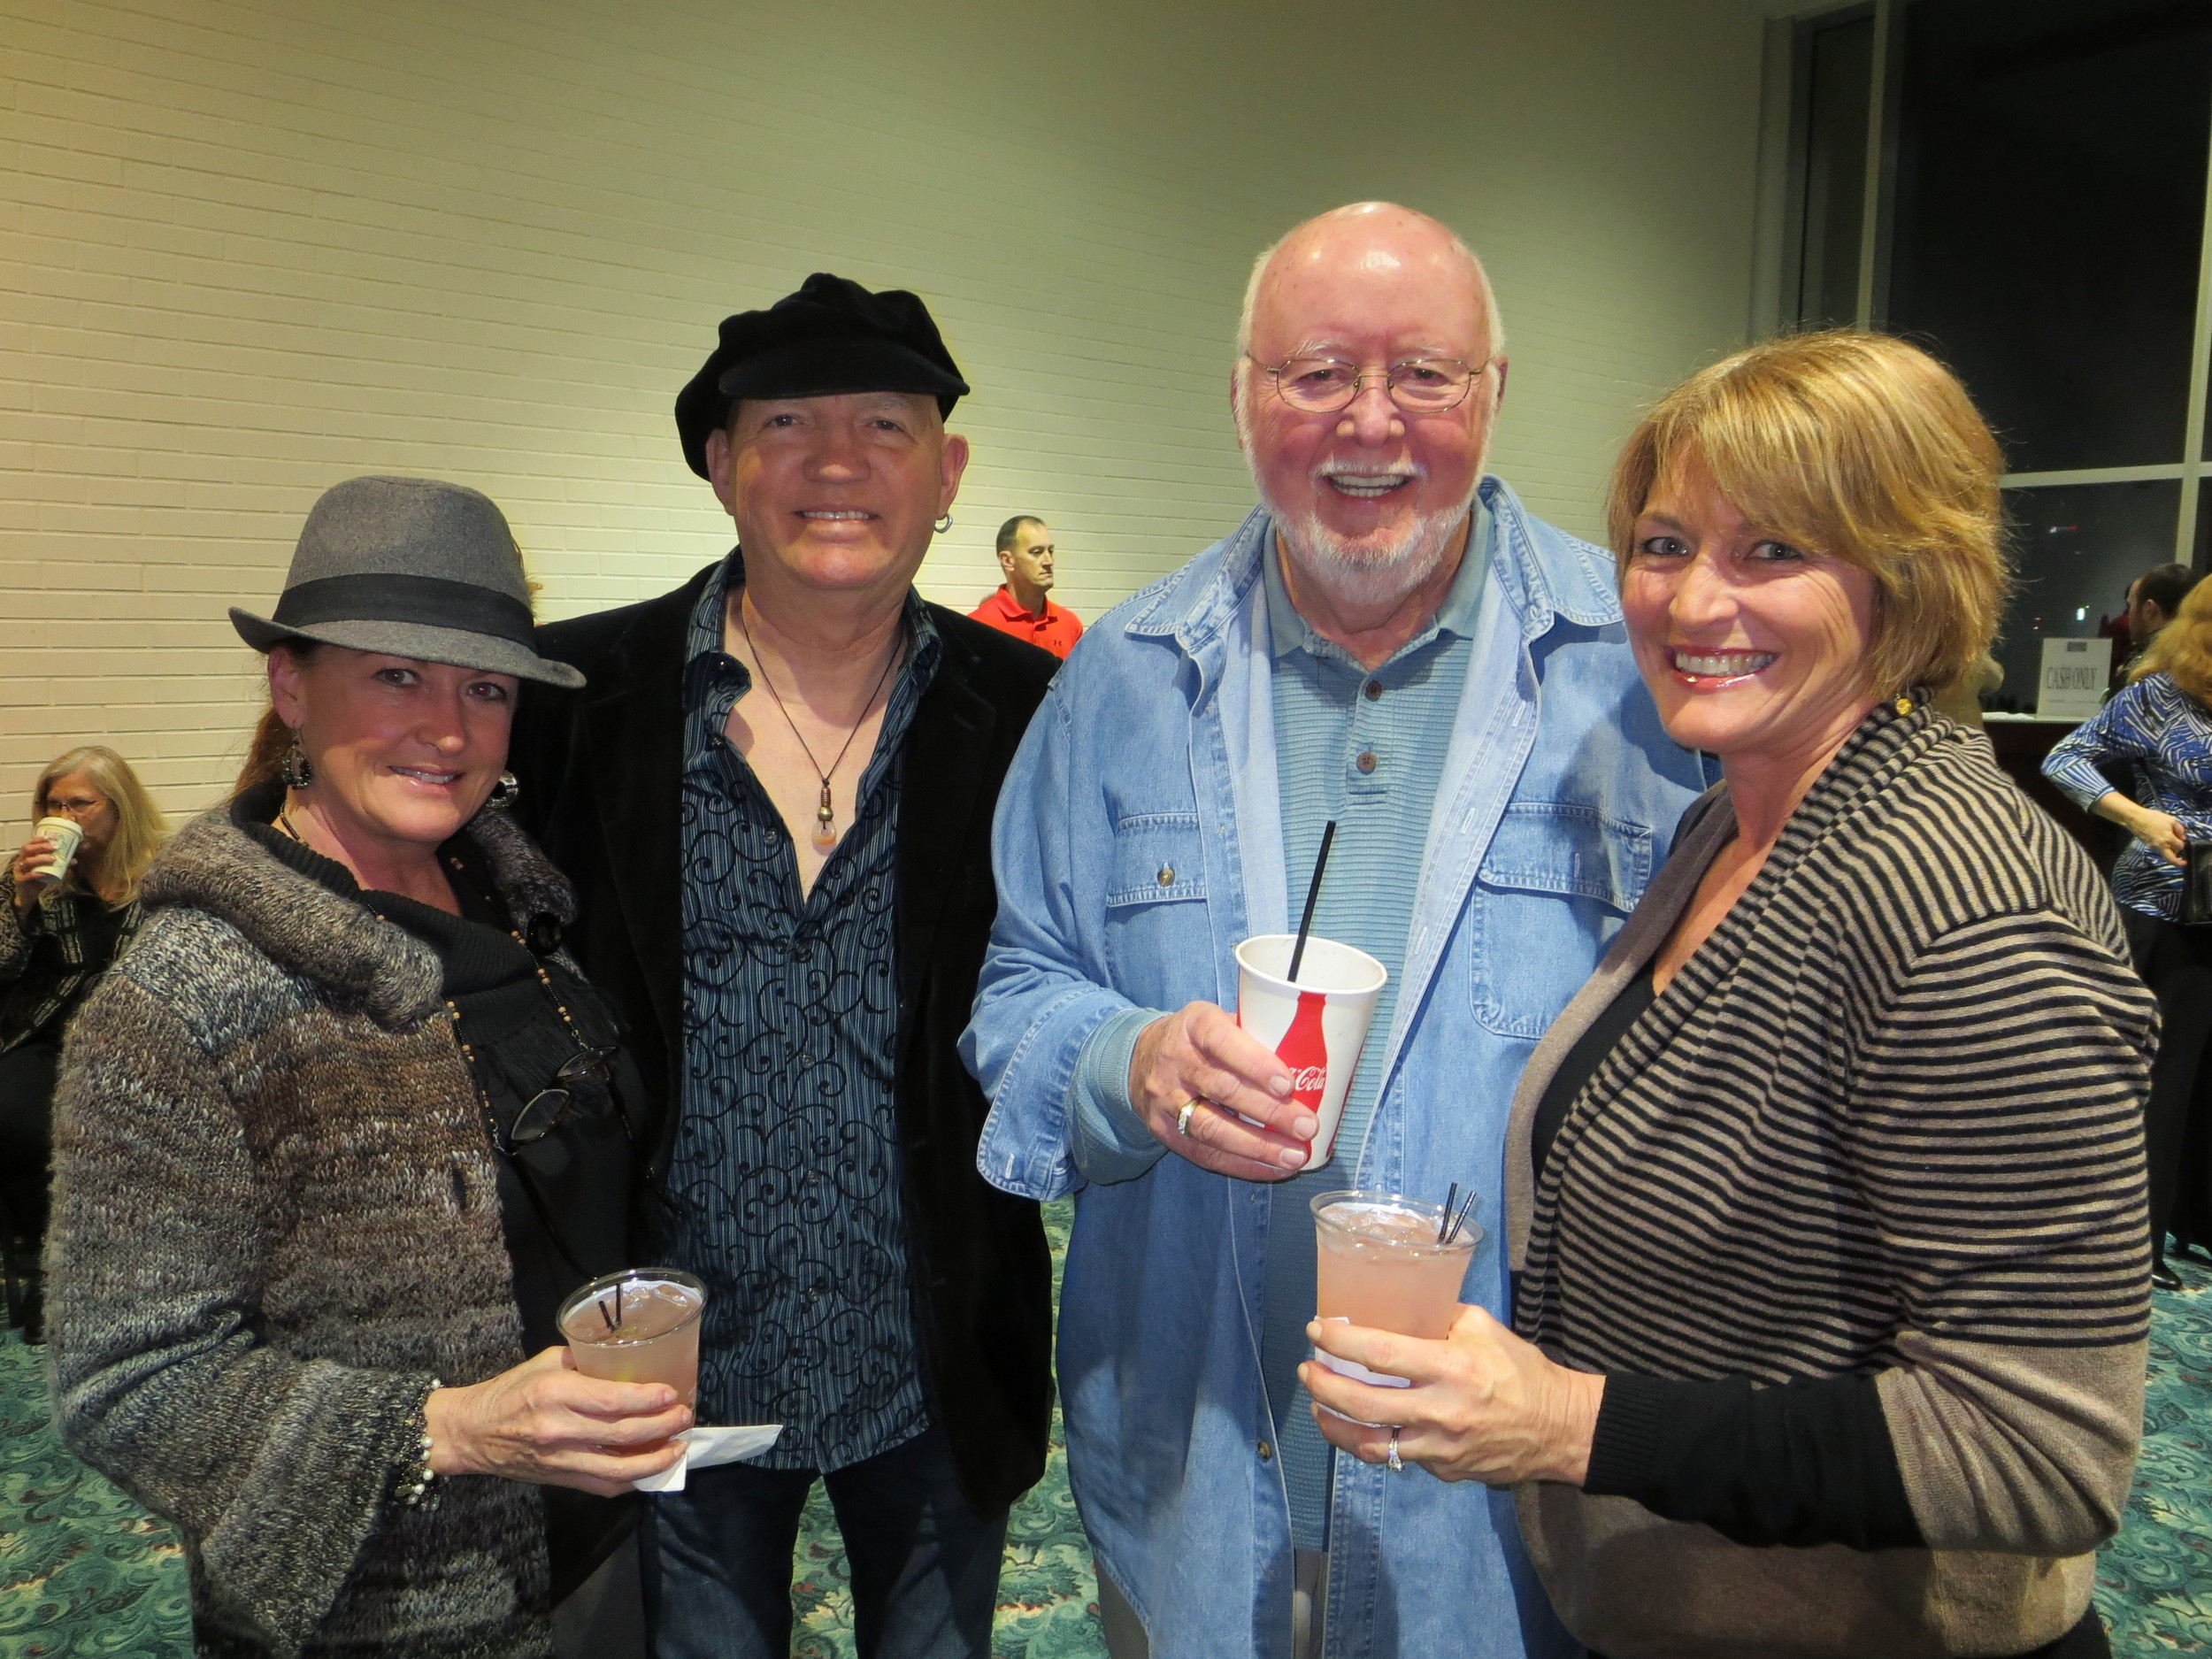 Jess Brinkley, Ron Norris, Jim Sherry, Tanya Street